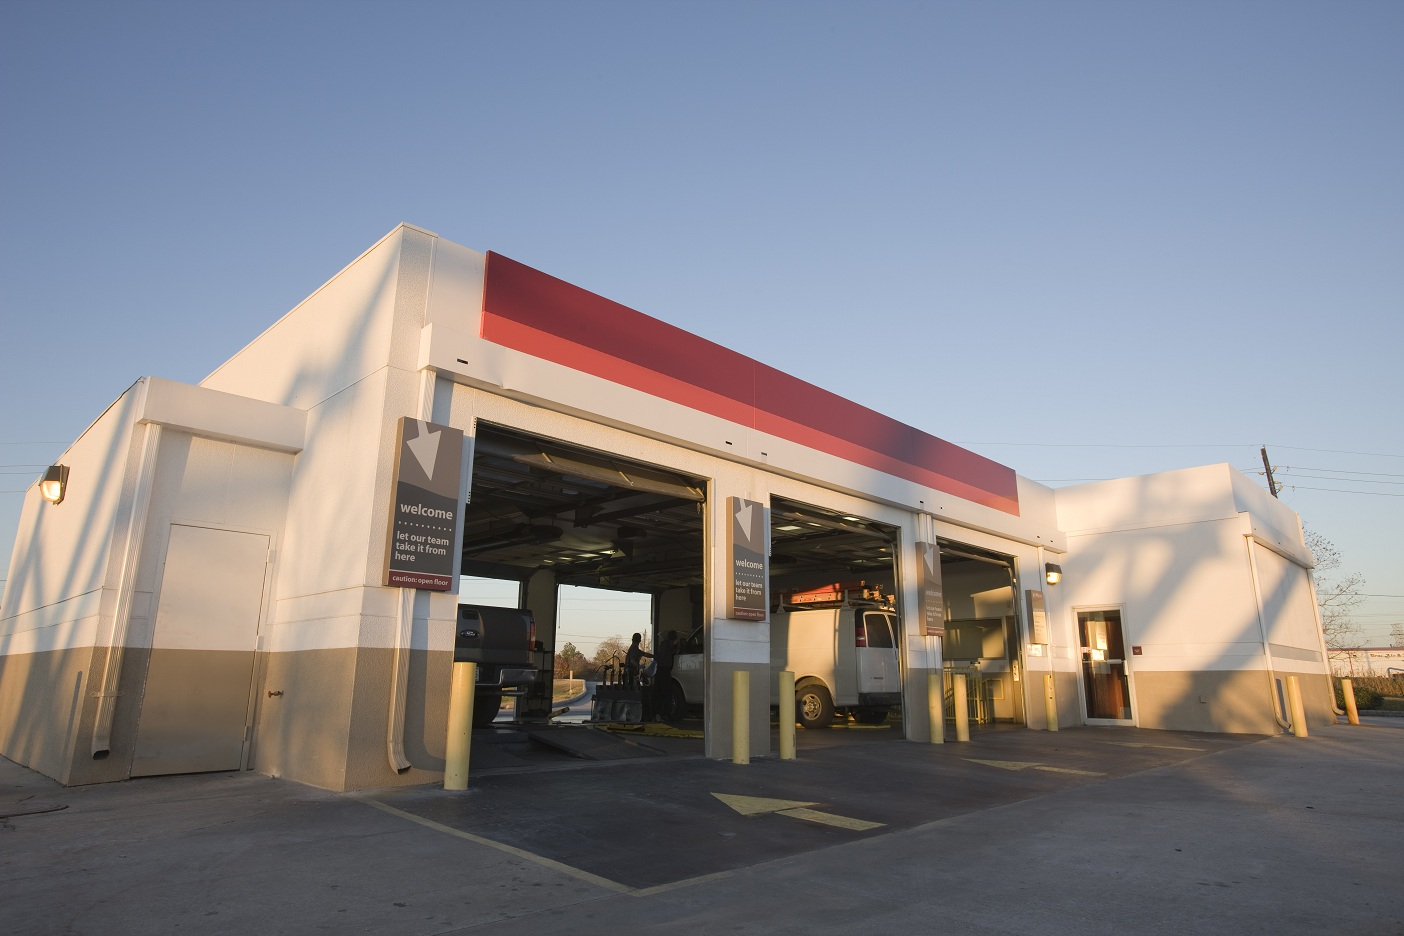 Jiffy Lube in Prescott Valley, AZ